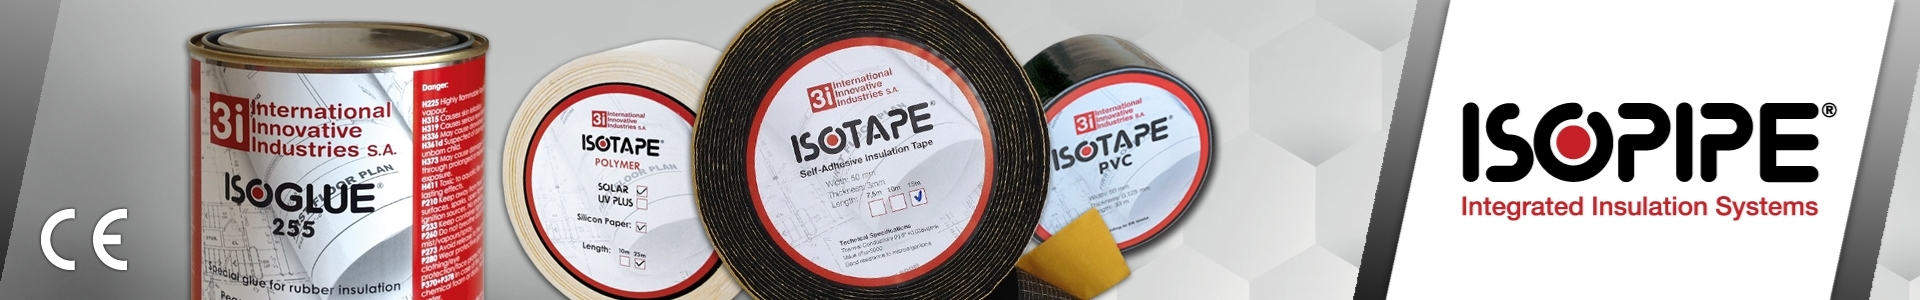 Picture of ISOPIPE Tapes & Glues